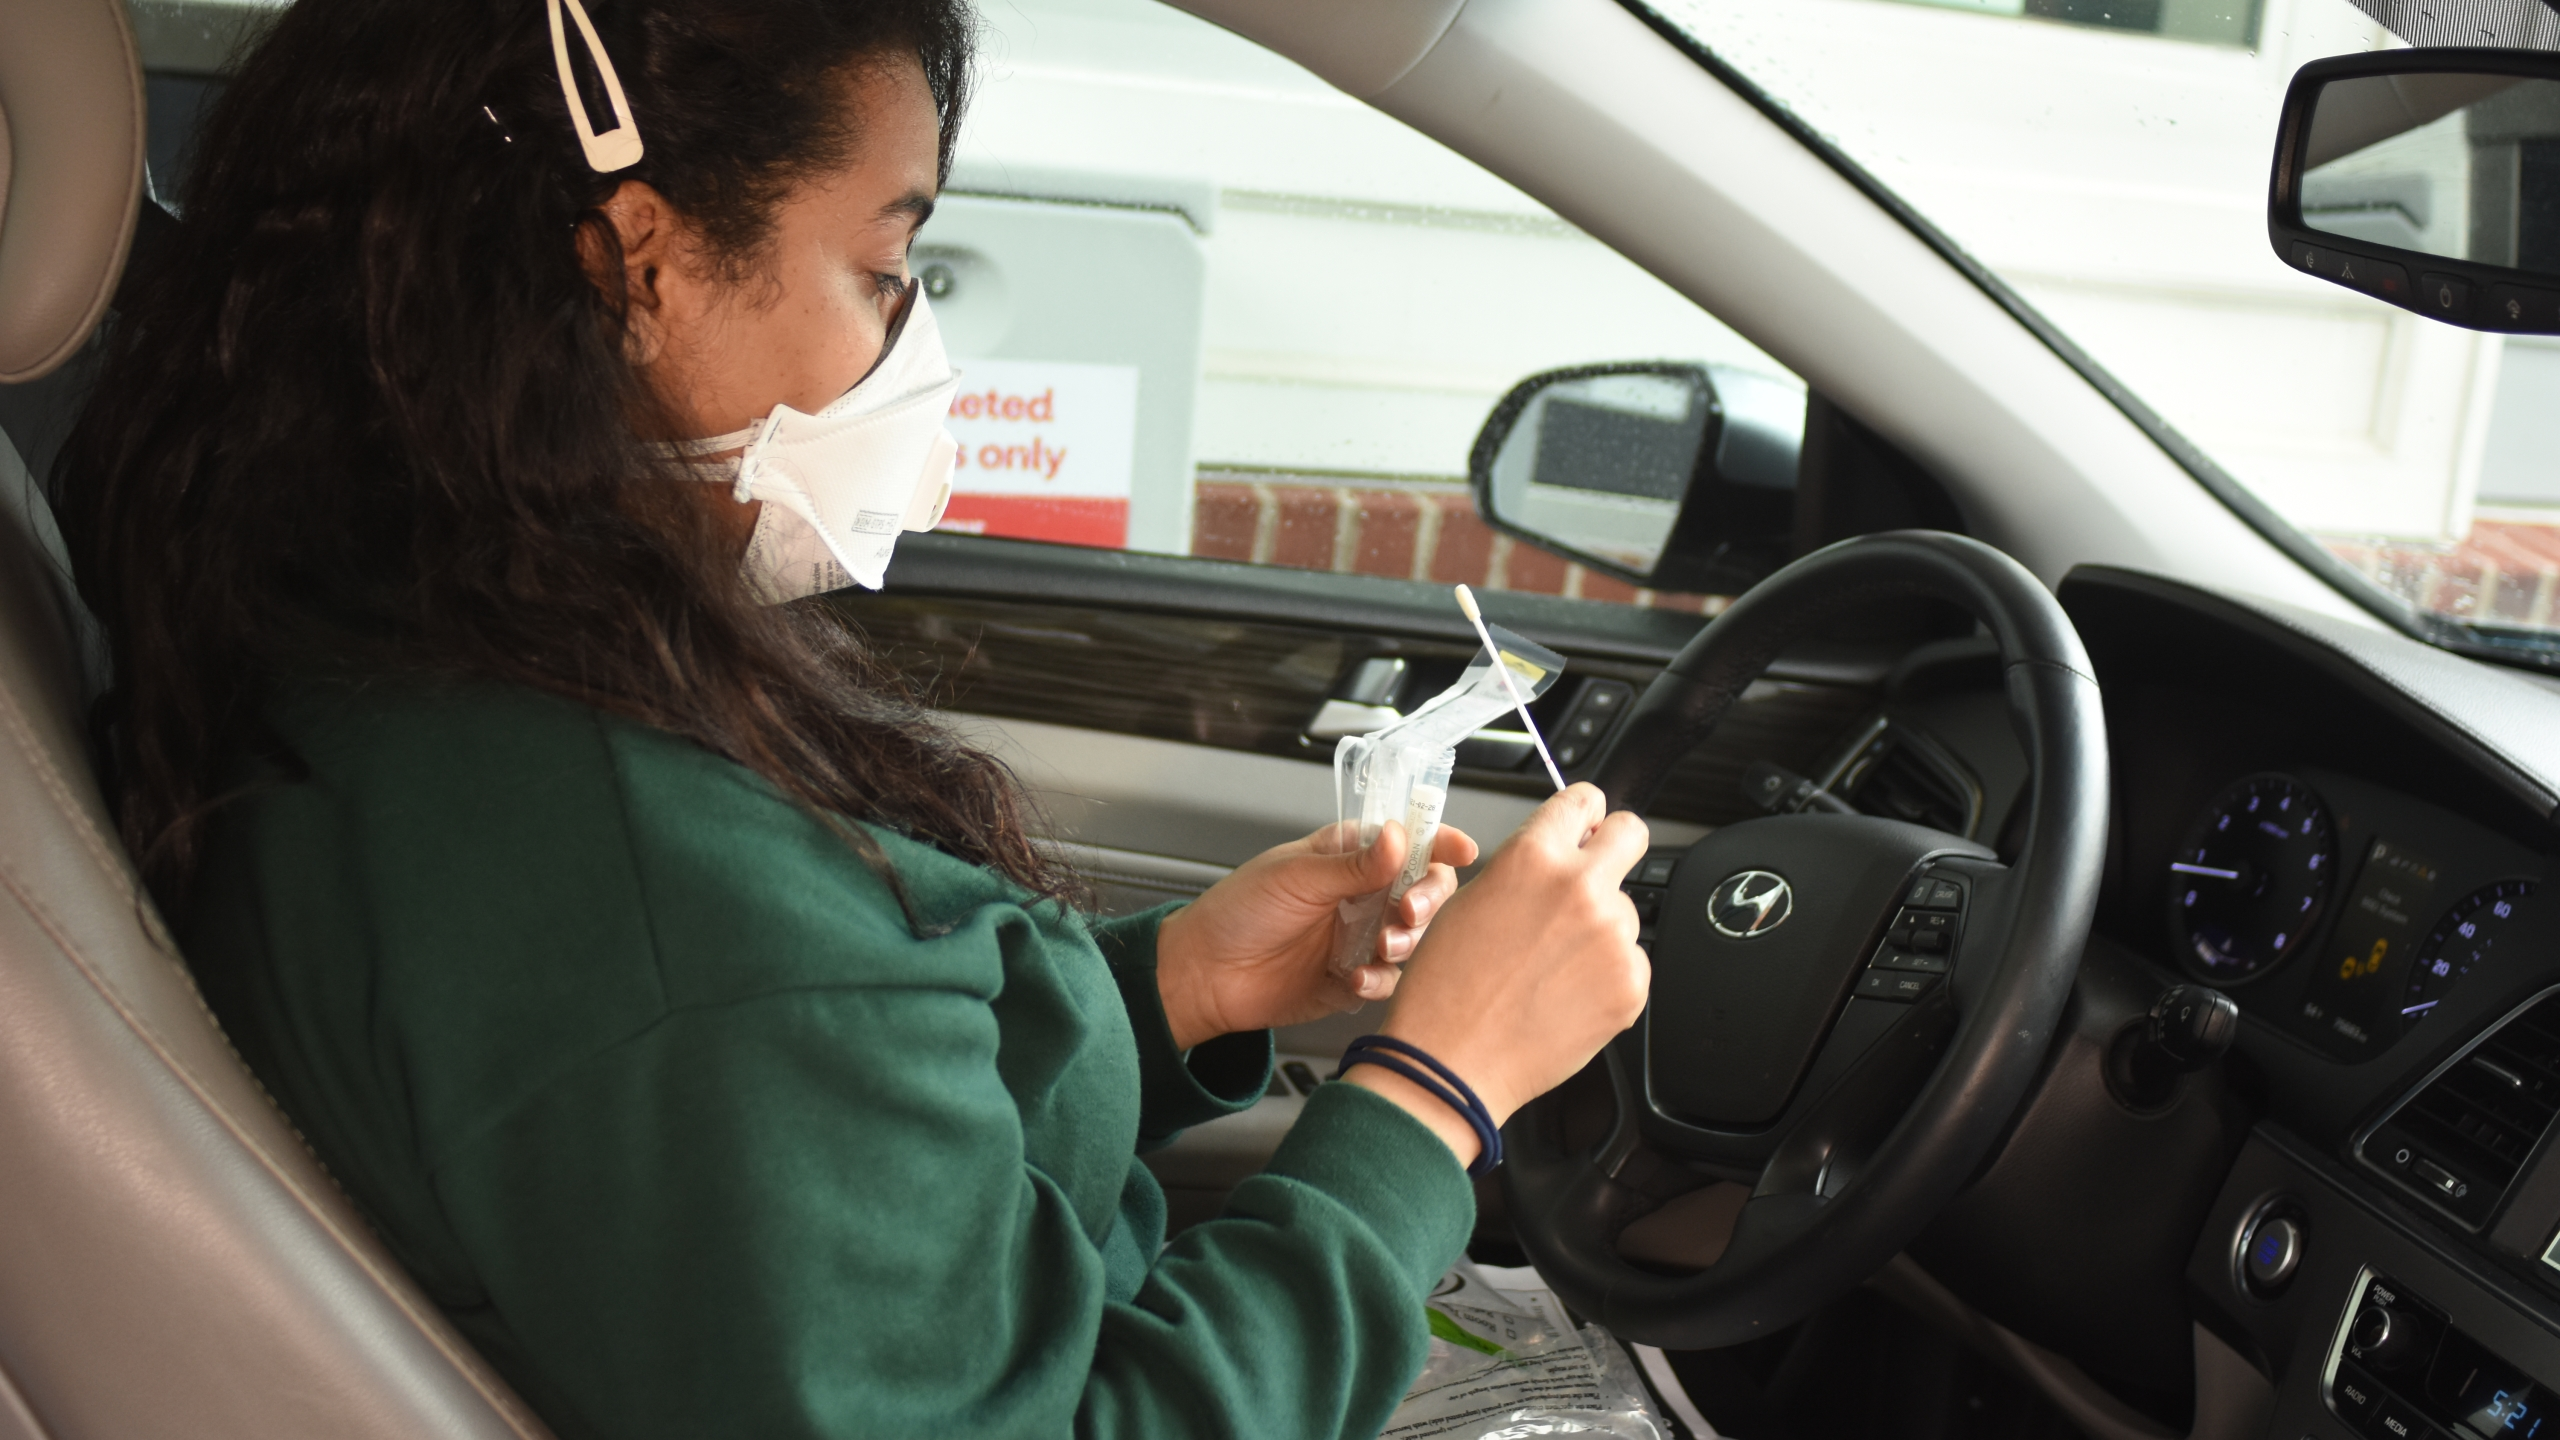 A patient at a self-swab COVID-19 testing site at a CVS Pharmacy. (CVS Health Newsroom)